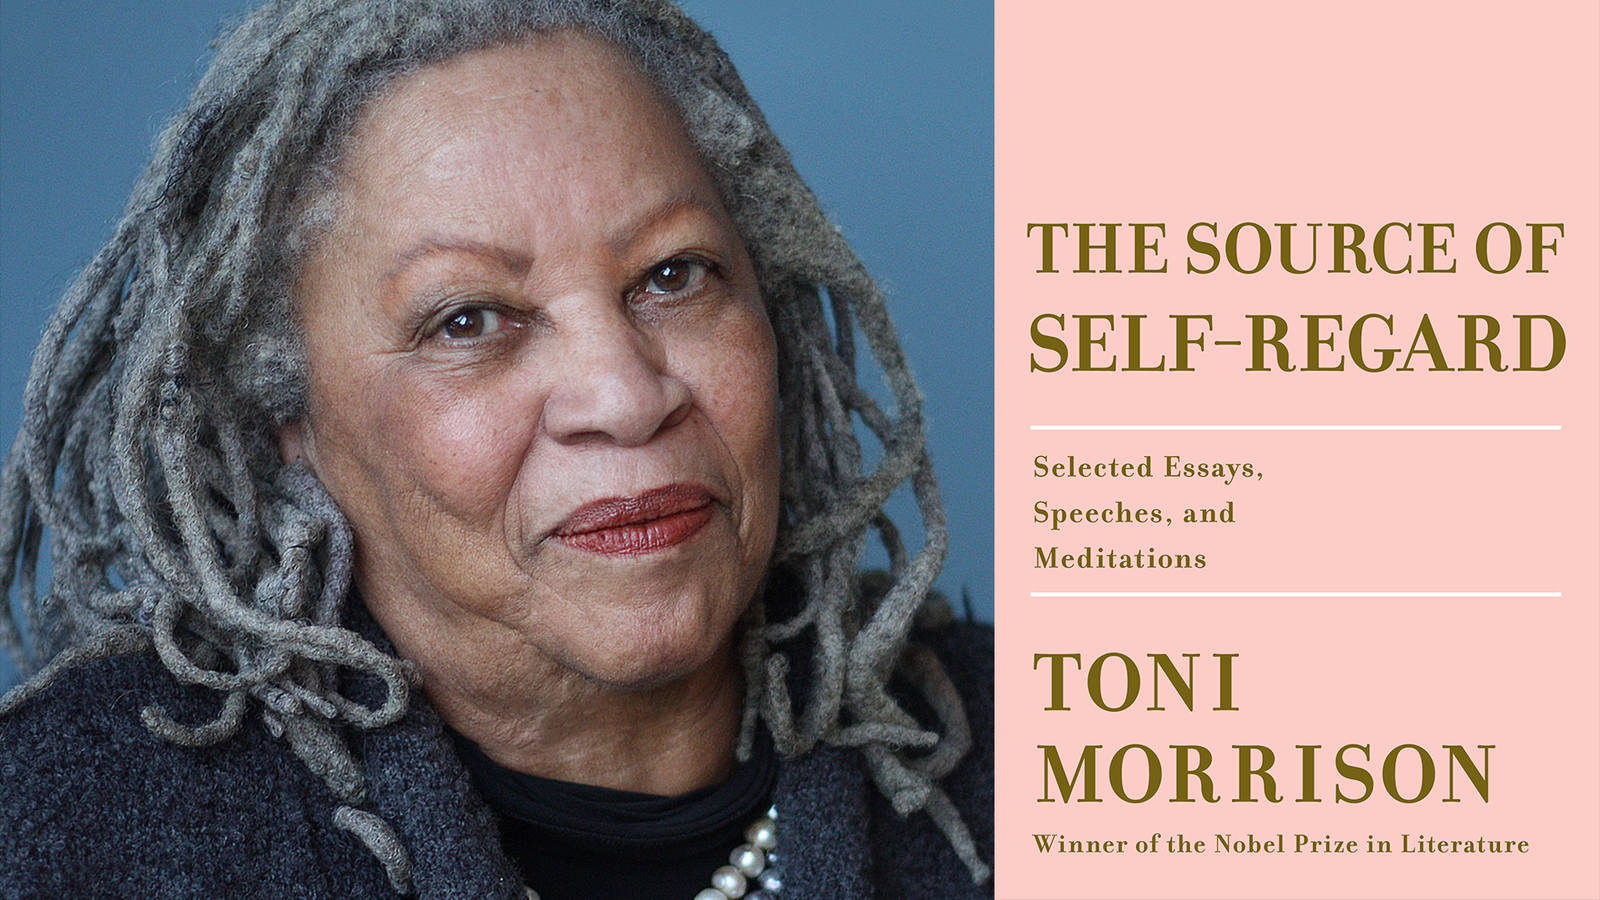 Women, Race, and Memory: An Excerpt From Toni Morrison's New